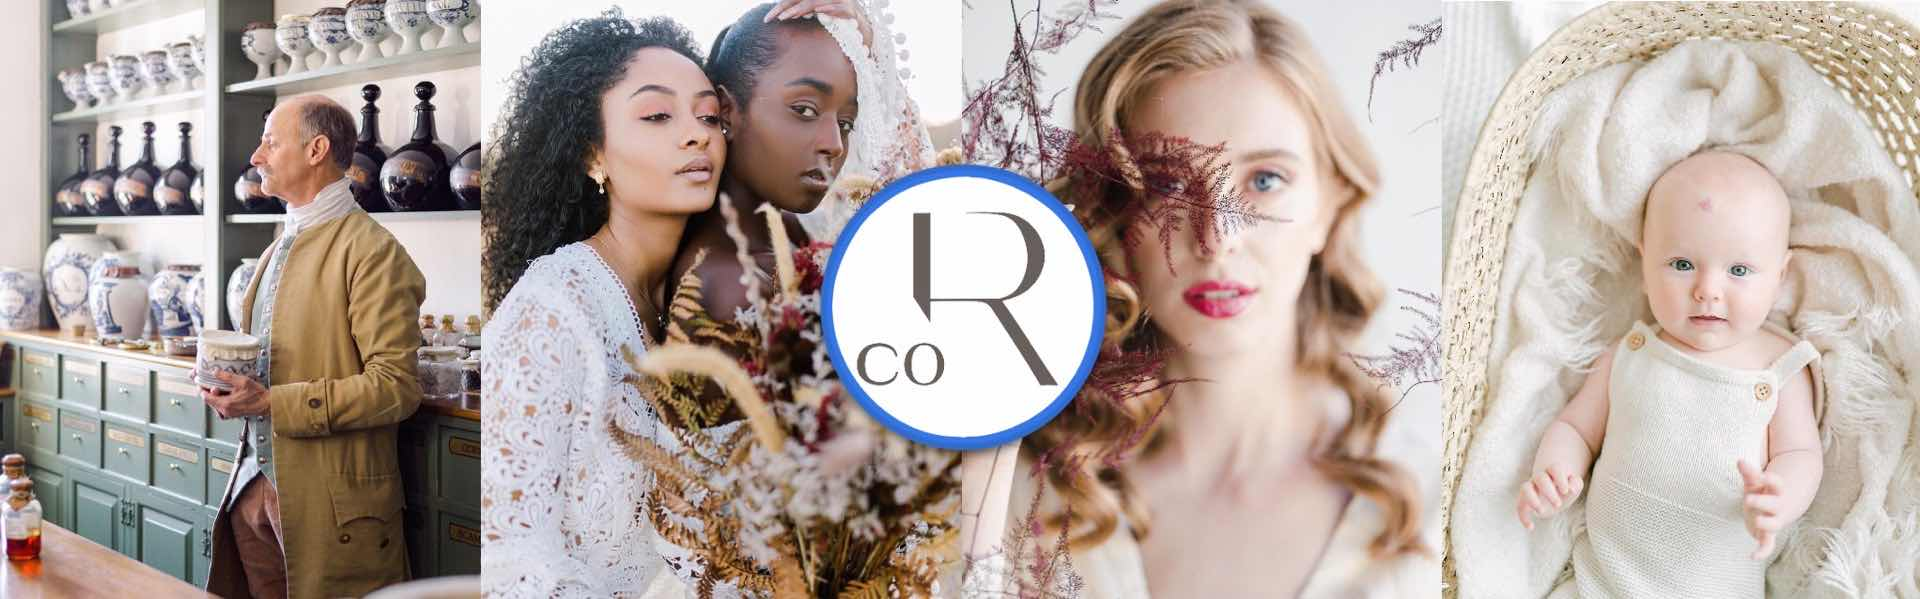 refined-co-photo-presets-for-desktop-and-mobile